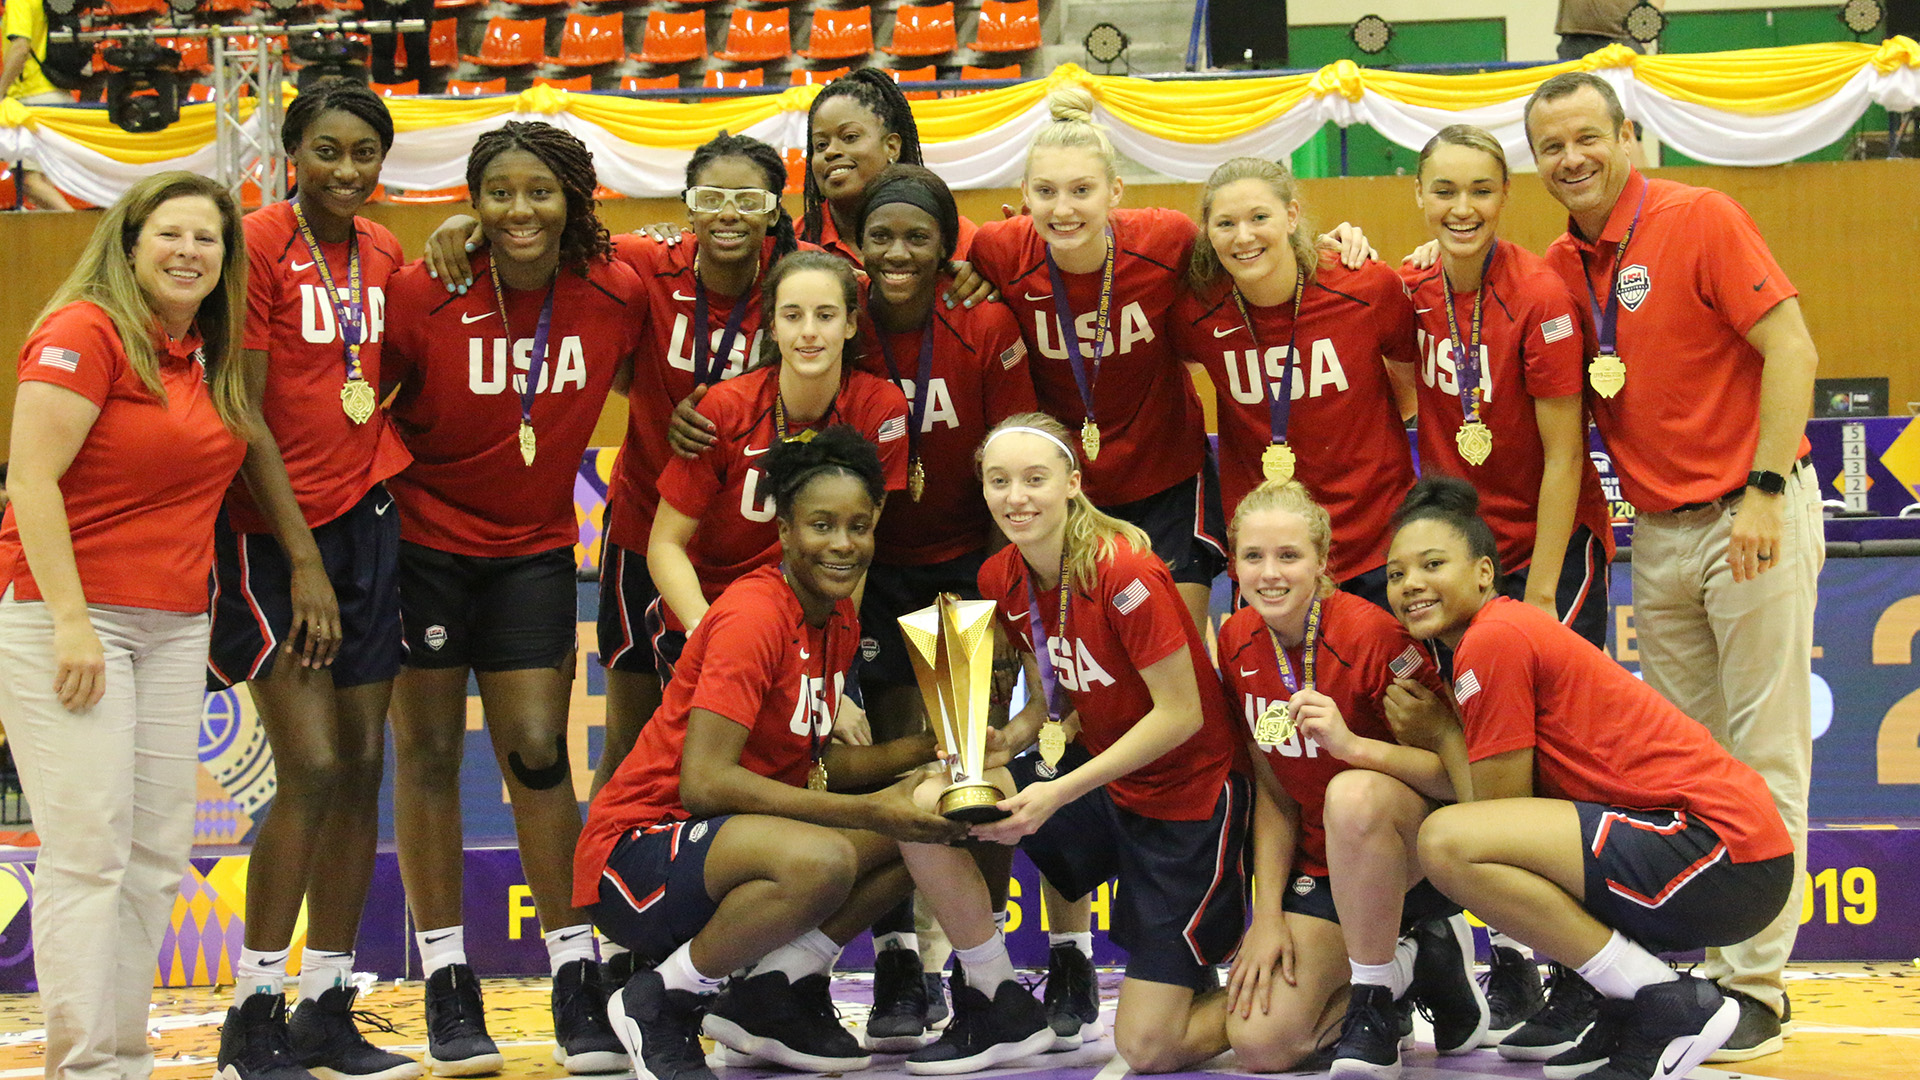 2019 USA WU19 Gold Medalists